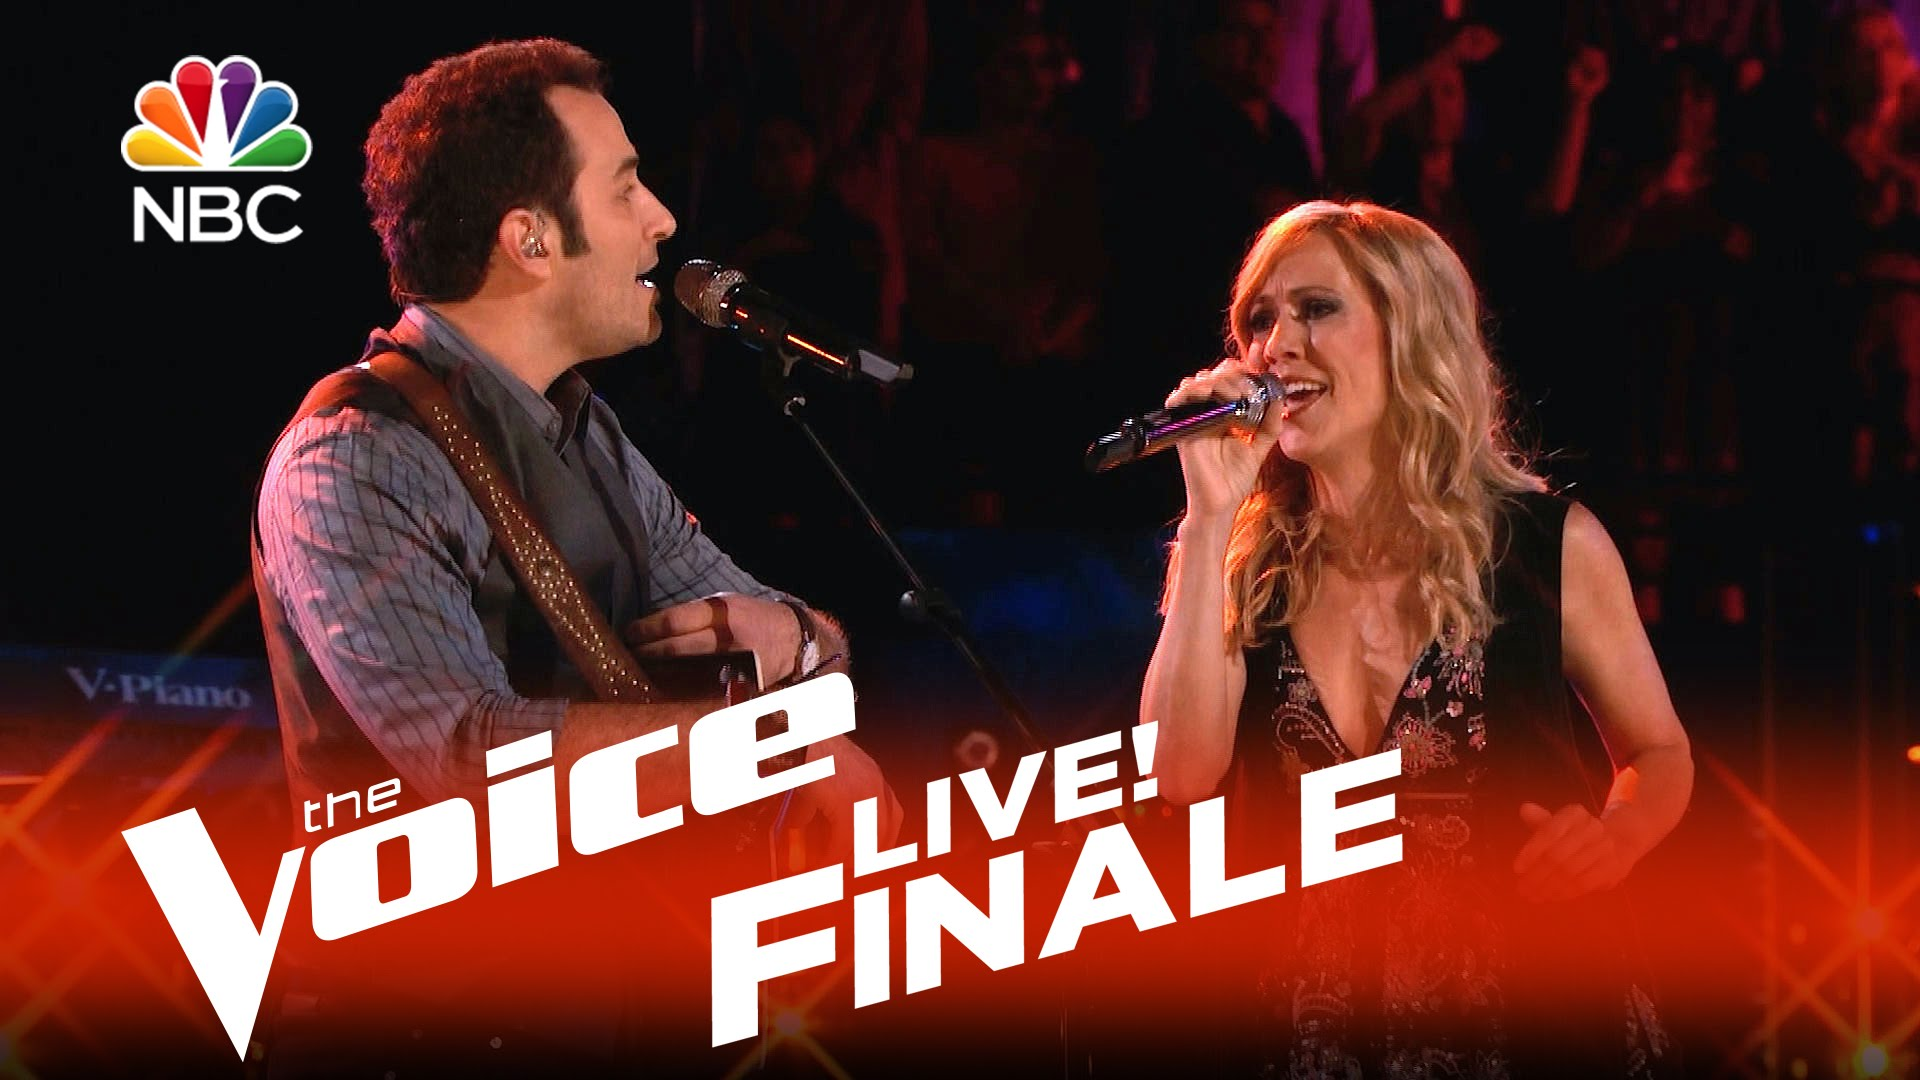 Sheryl Crow joins Joshua Davis for duet on 'The Voice' finale